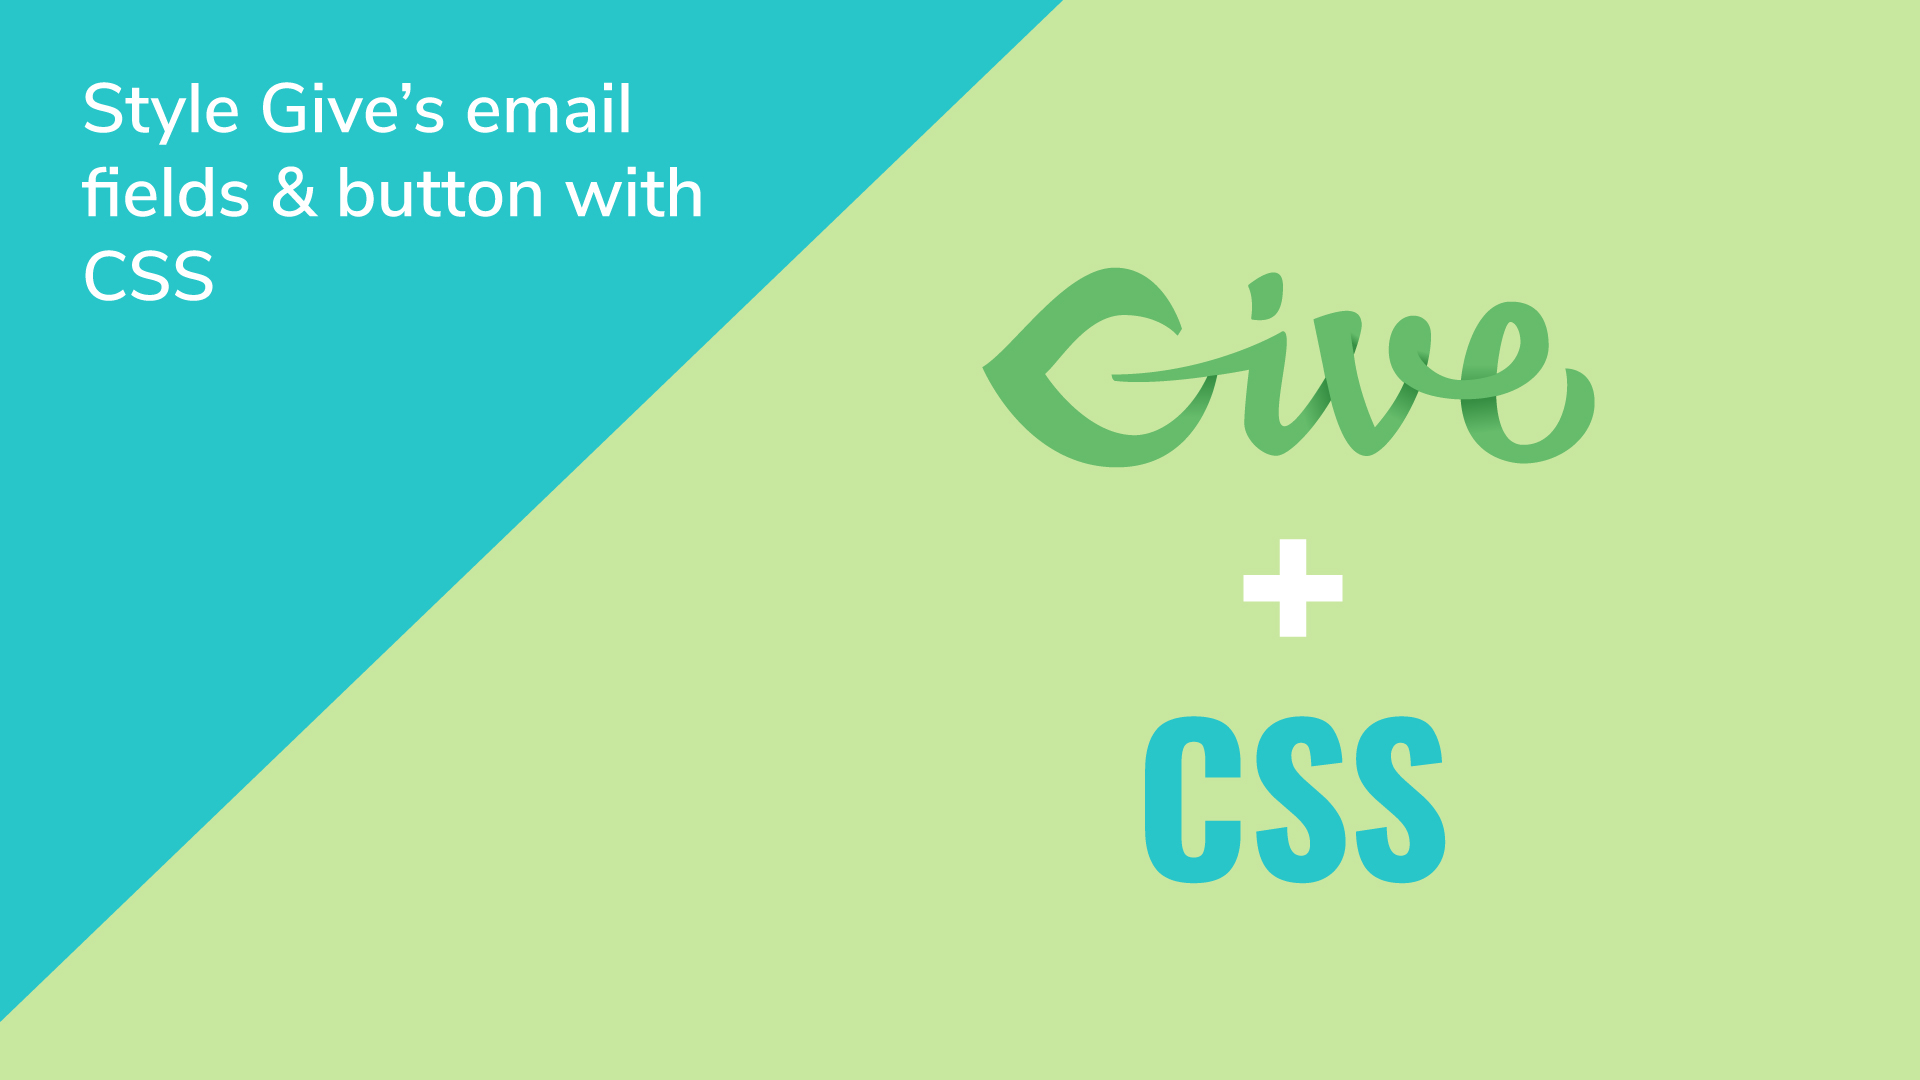 How to style give wps email access token fields and buttons